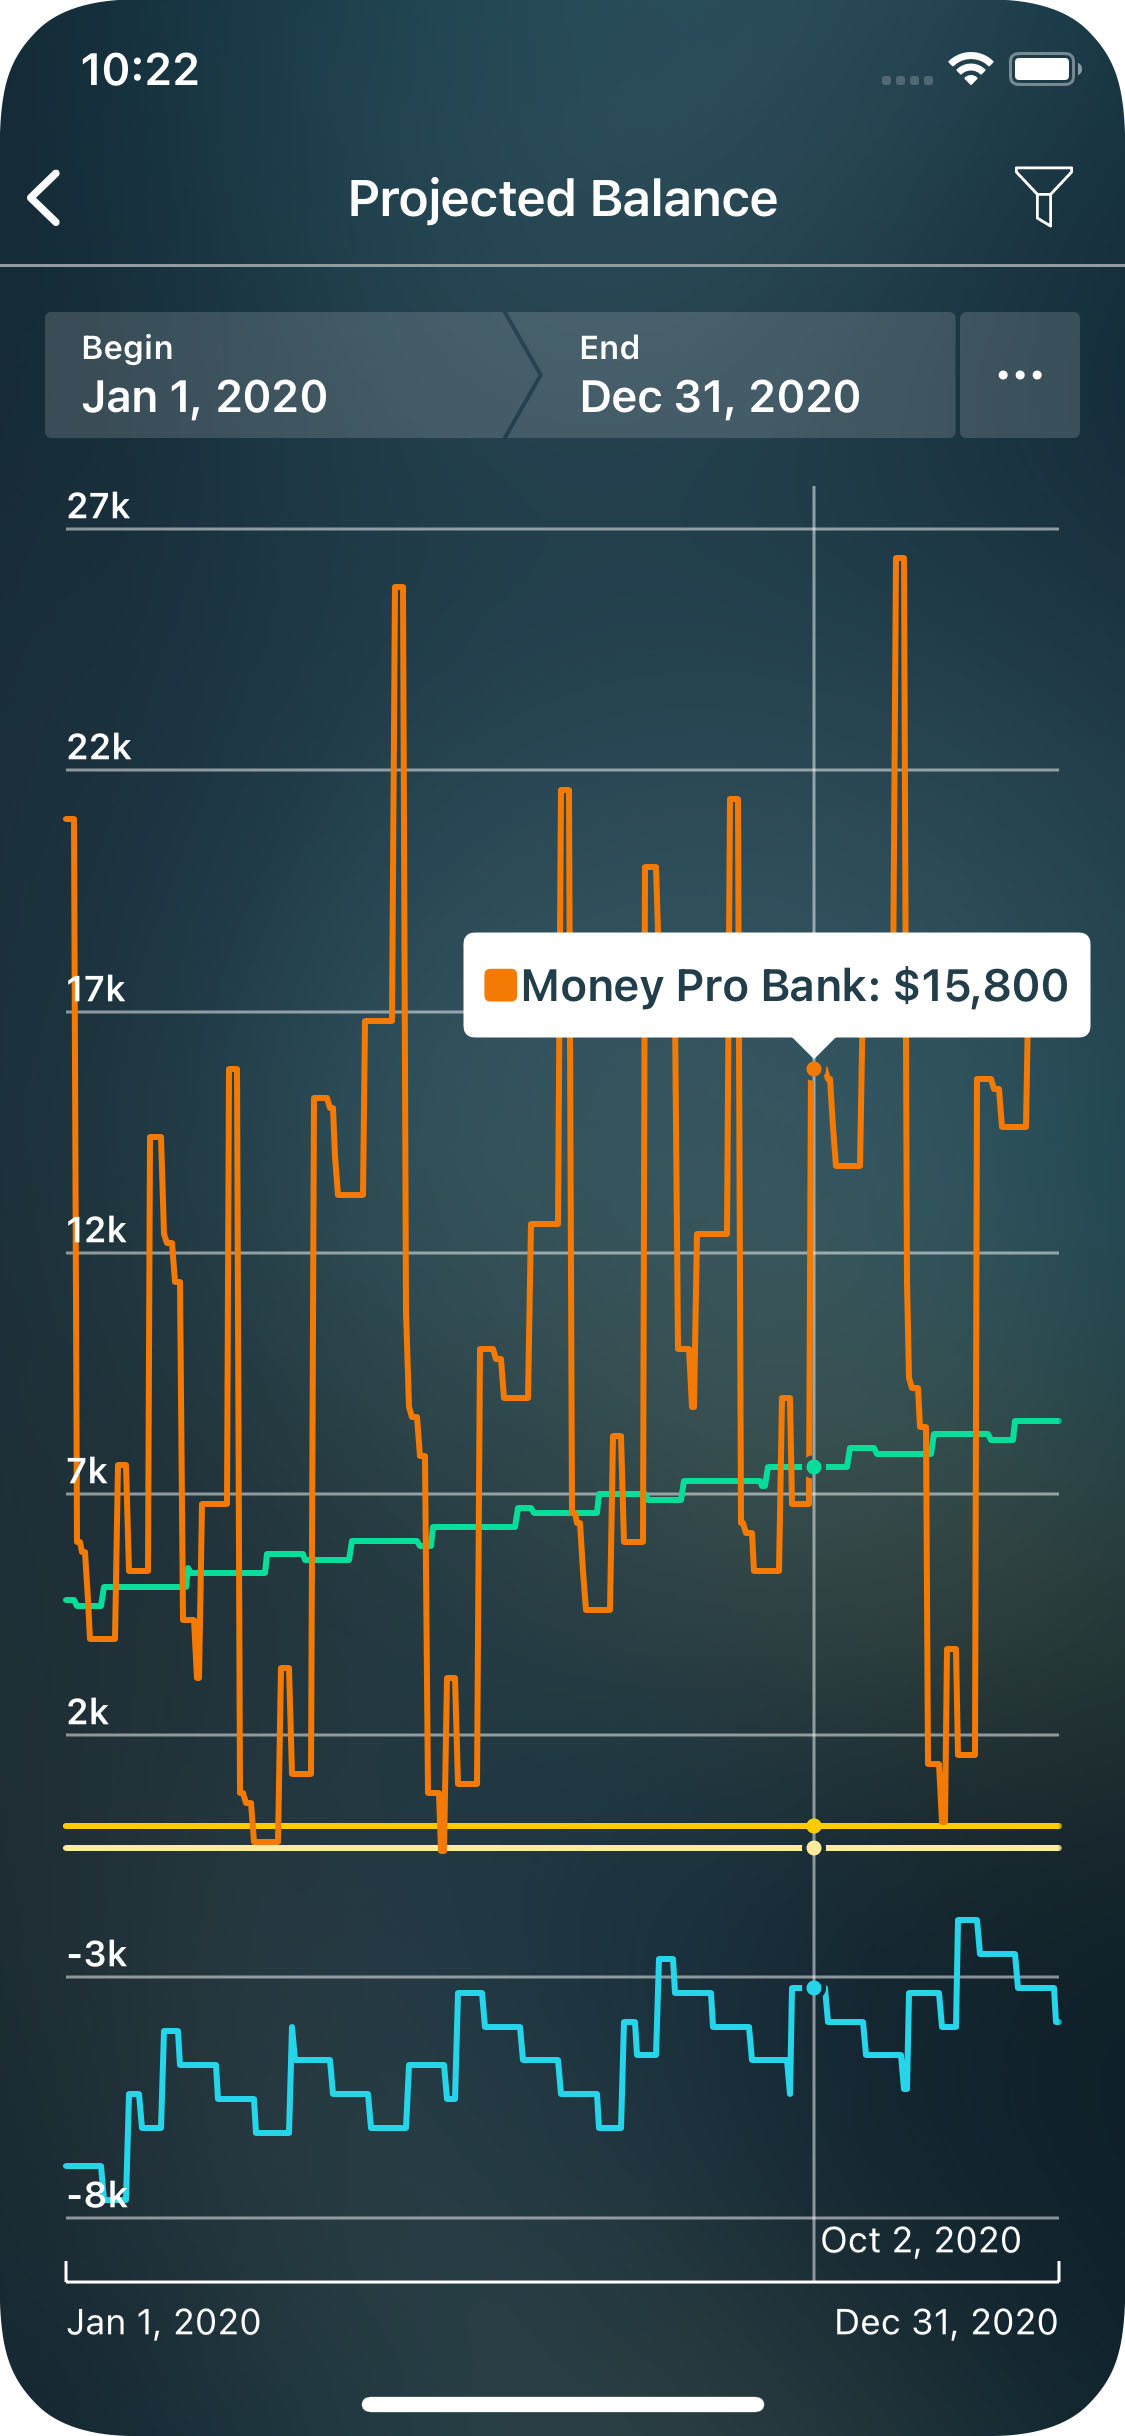 Money Pro - Projected balance report - iPhone